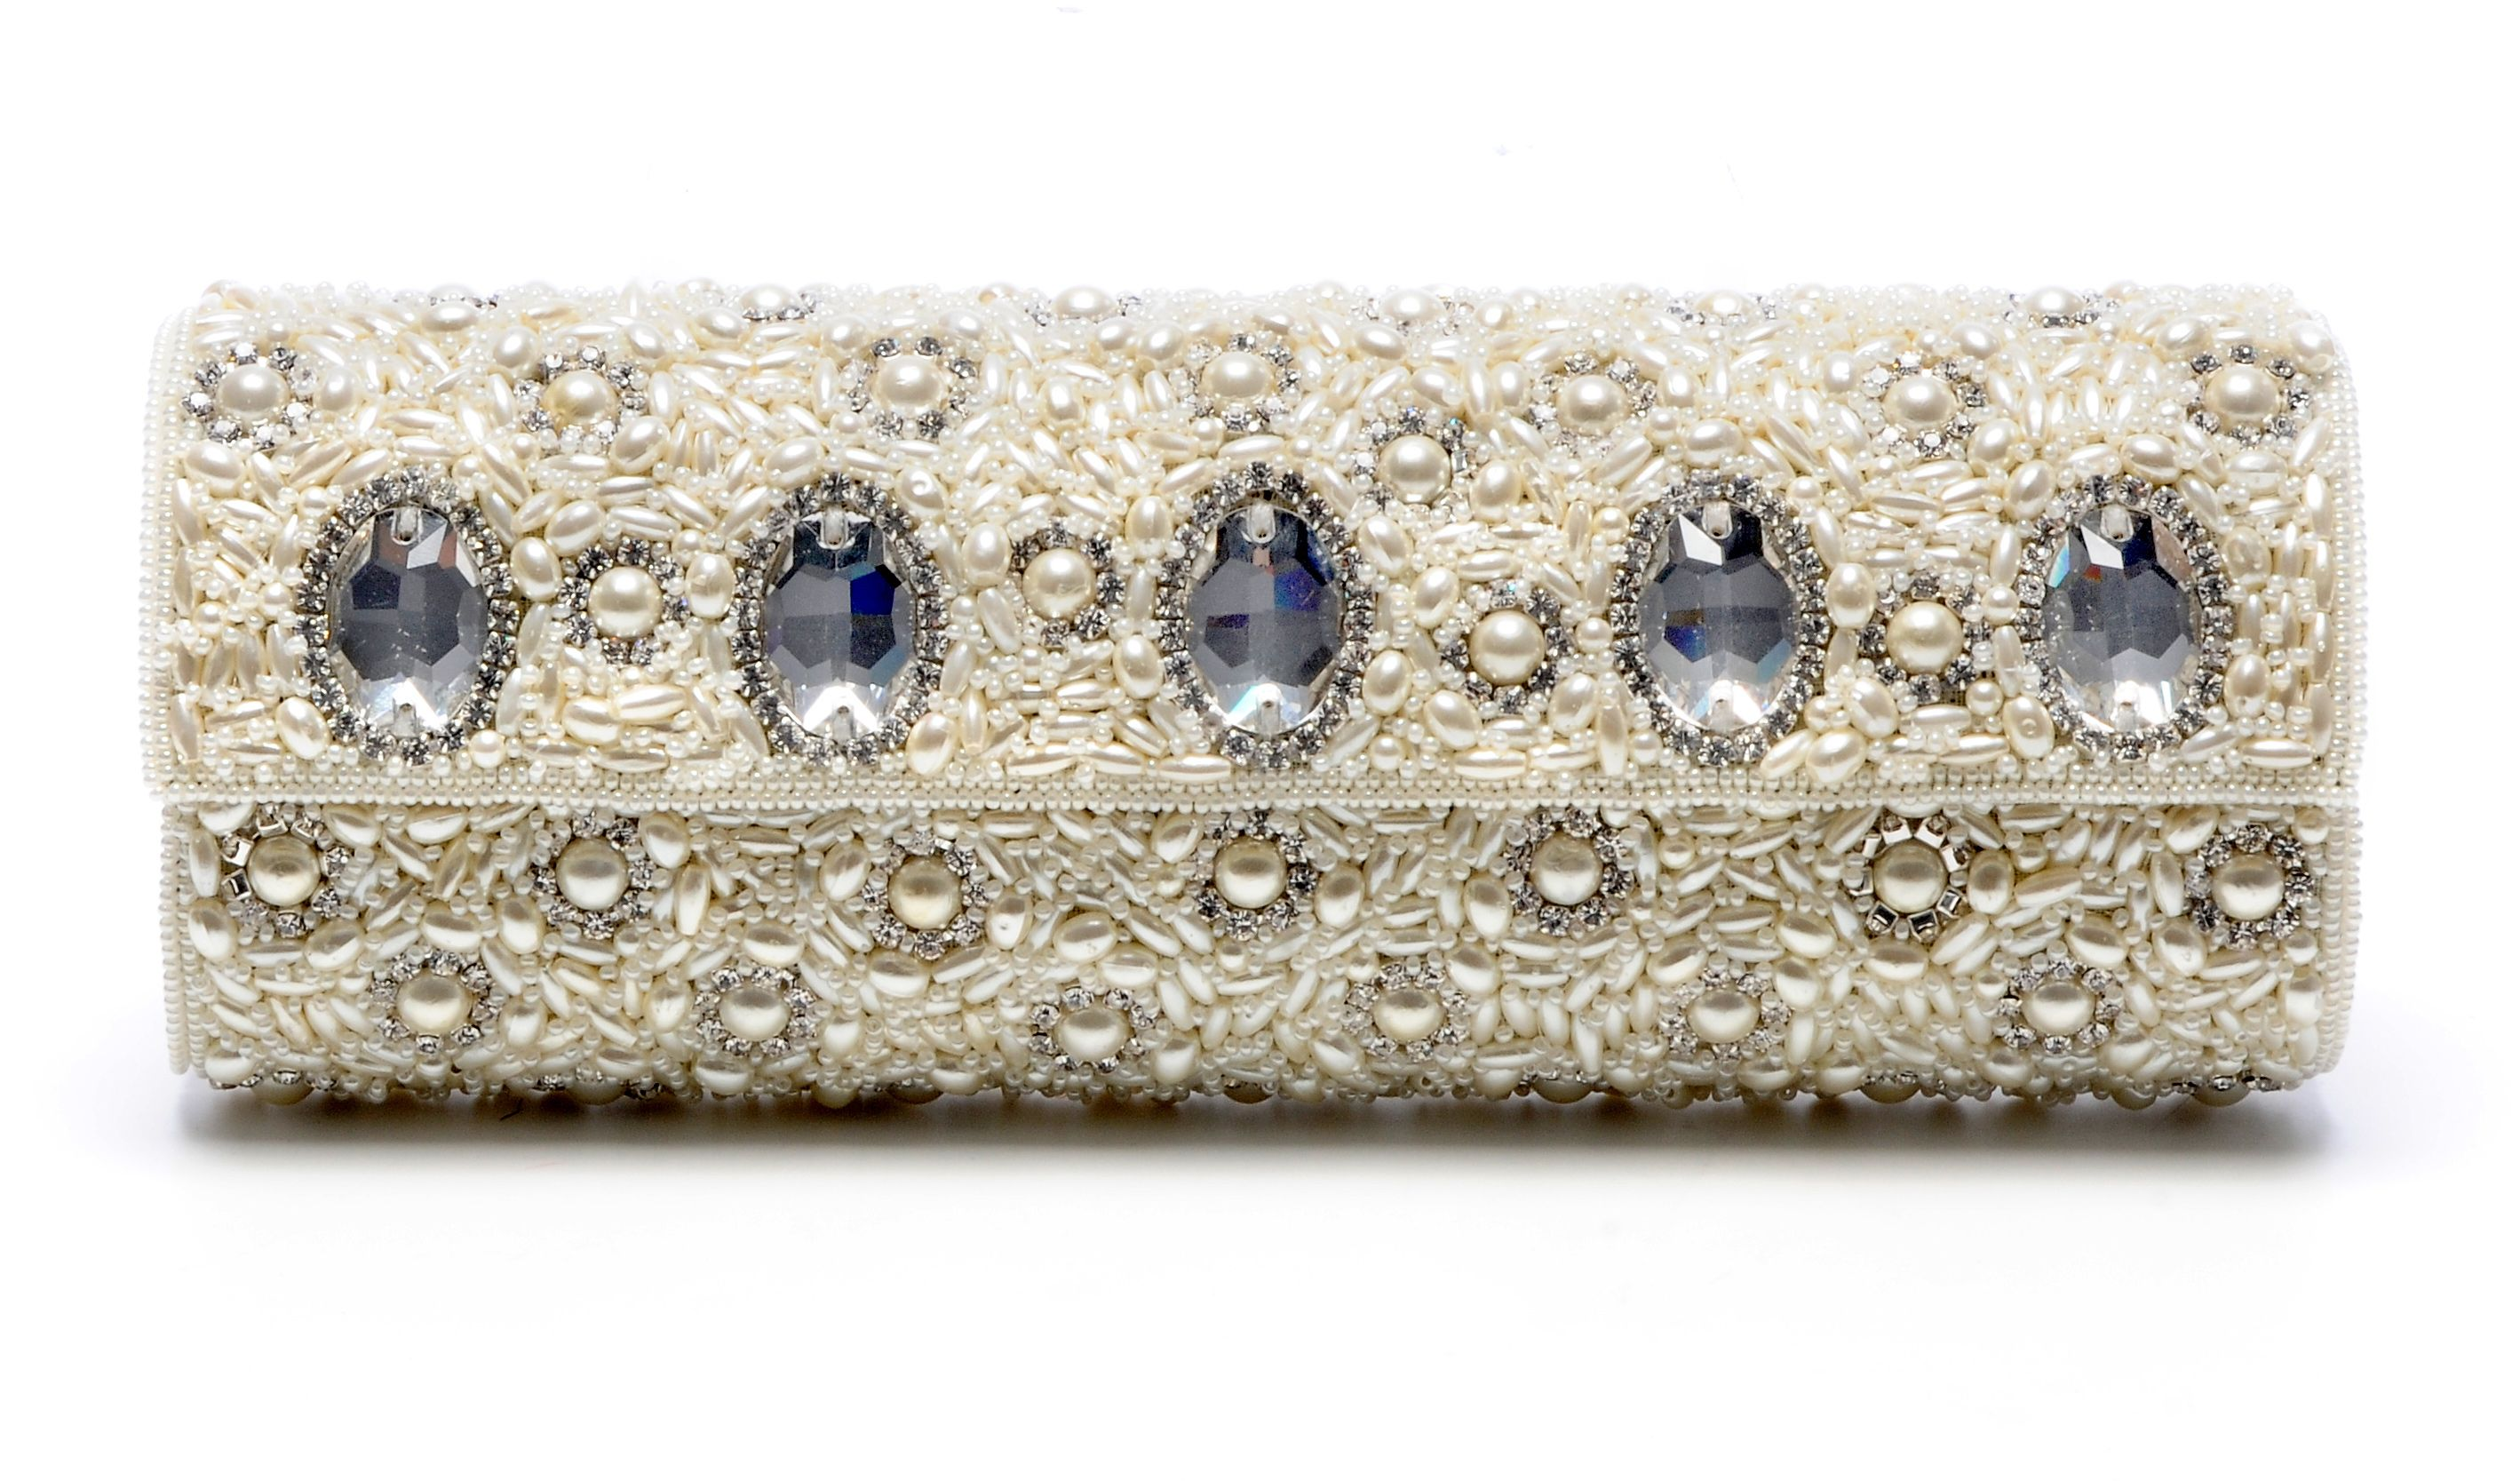 17 Best images about Clutches and Handbags on Pinterest | Bridal ...